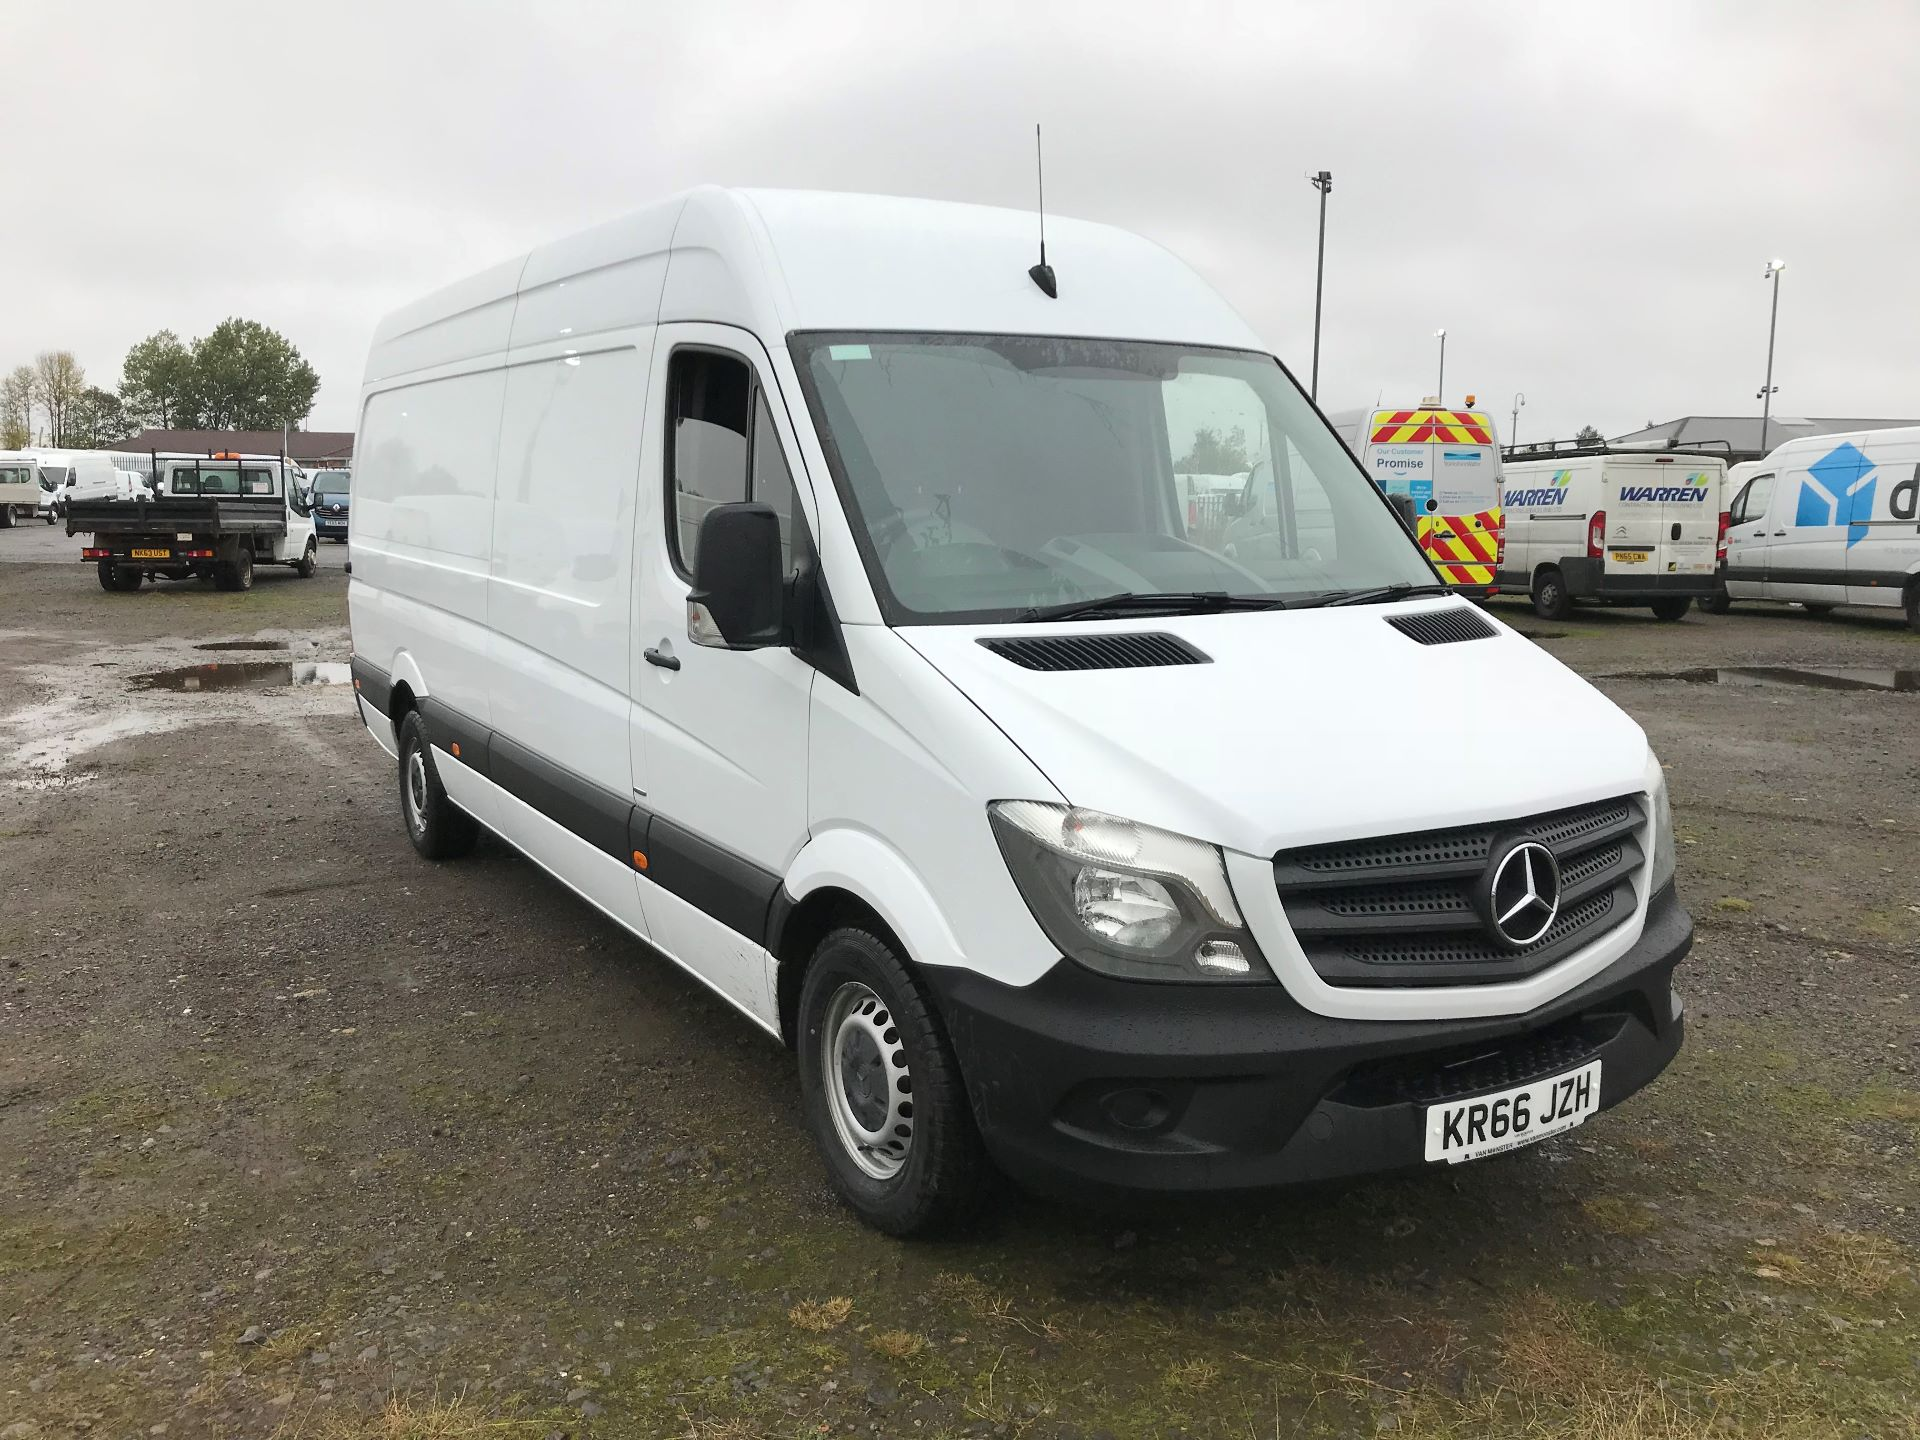 2016 Mercedes-Benz Sprinter 3.5T High Roof Van (KR66JZH)